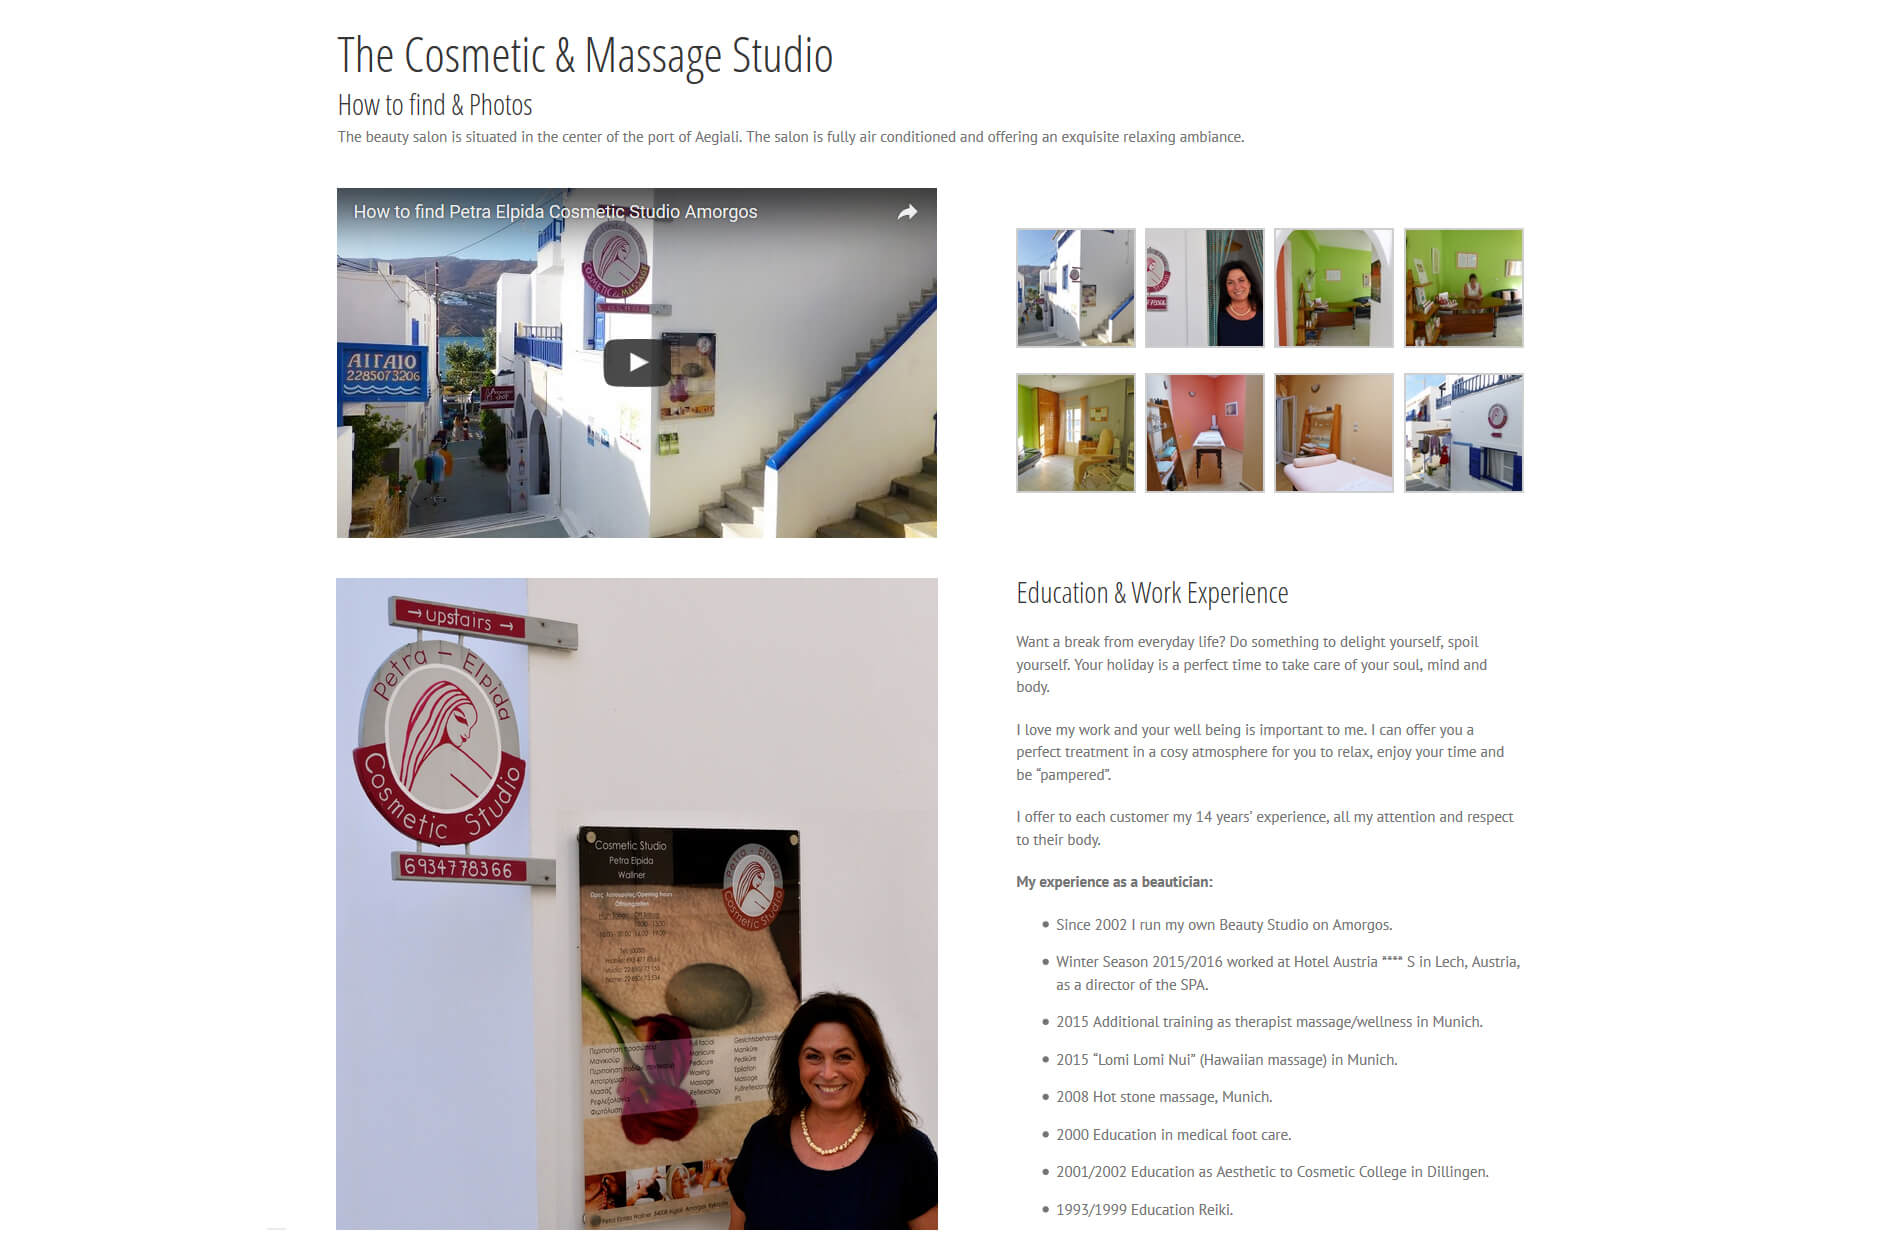 Web design anweb Petra Elpida Cosmetic & Massage Studio Amorgos